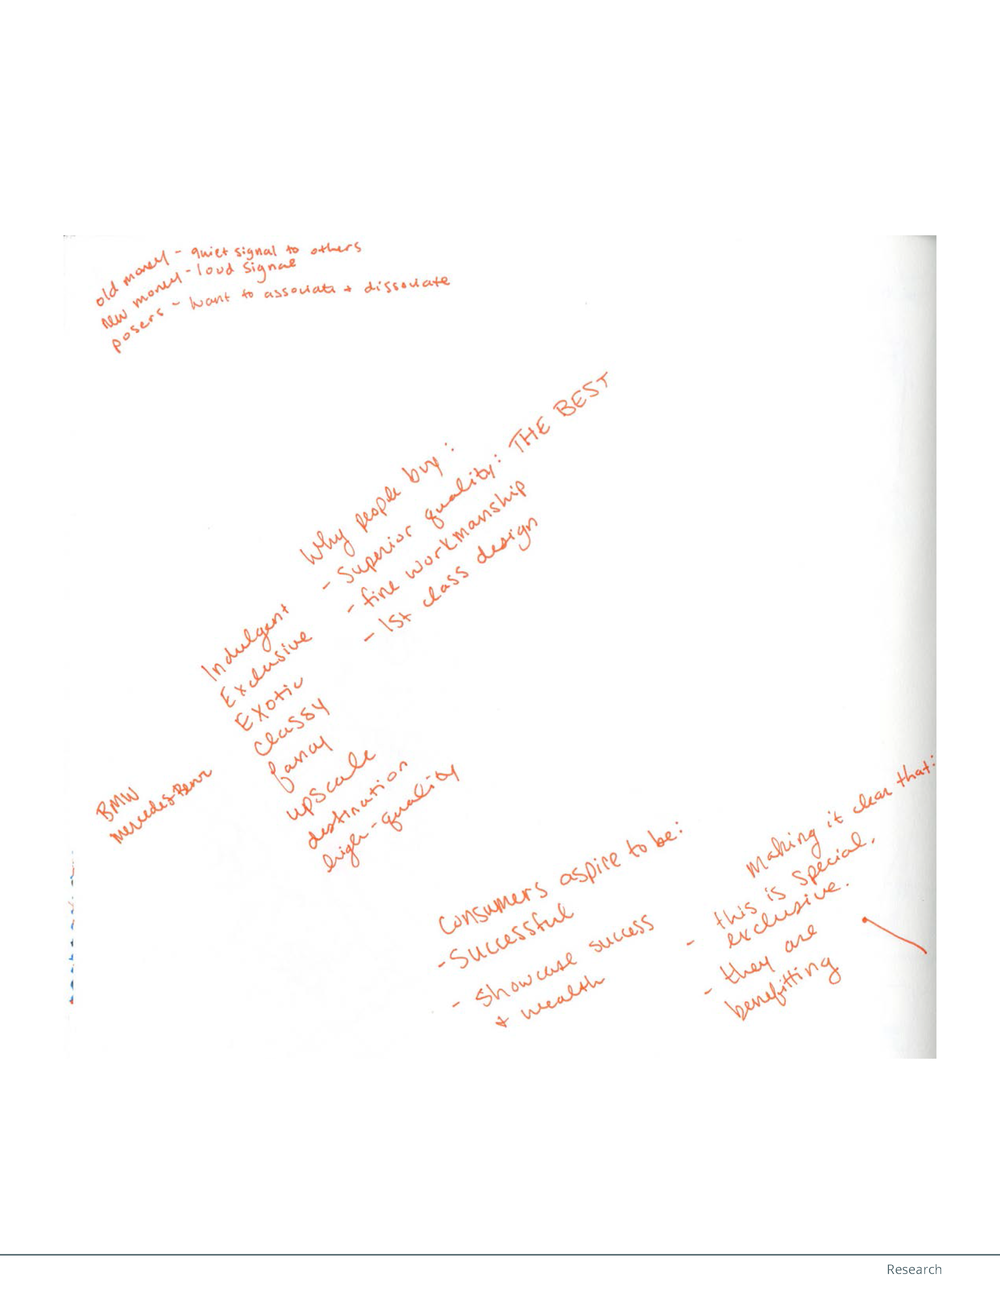 GRDS400_Casem_Project3ProcessBook_F14_Audreybaechle_Page_15.png